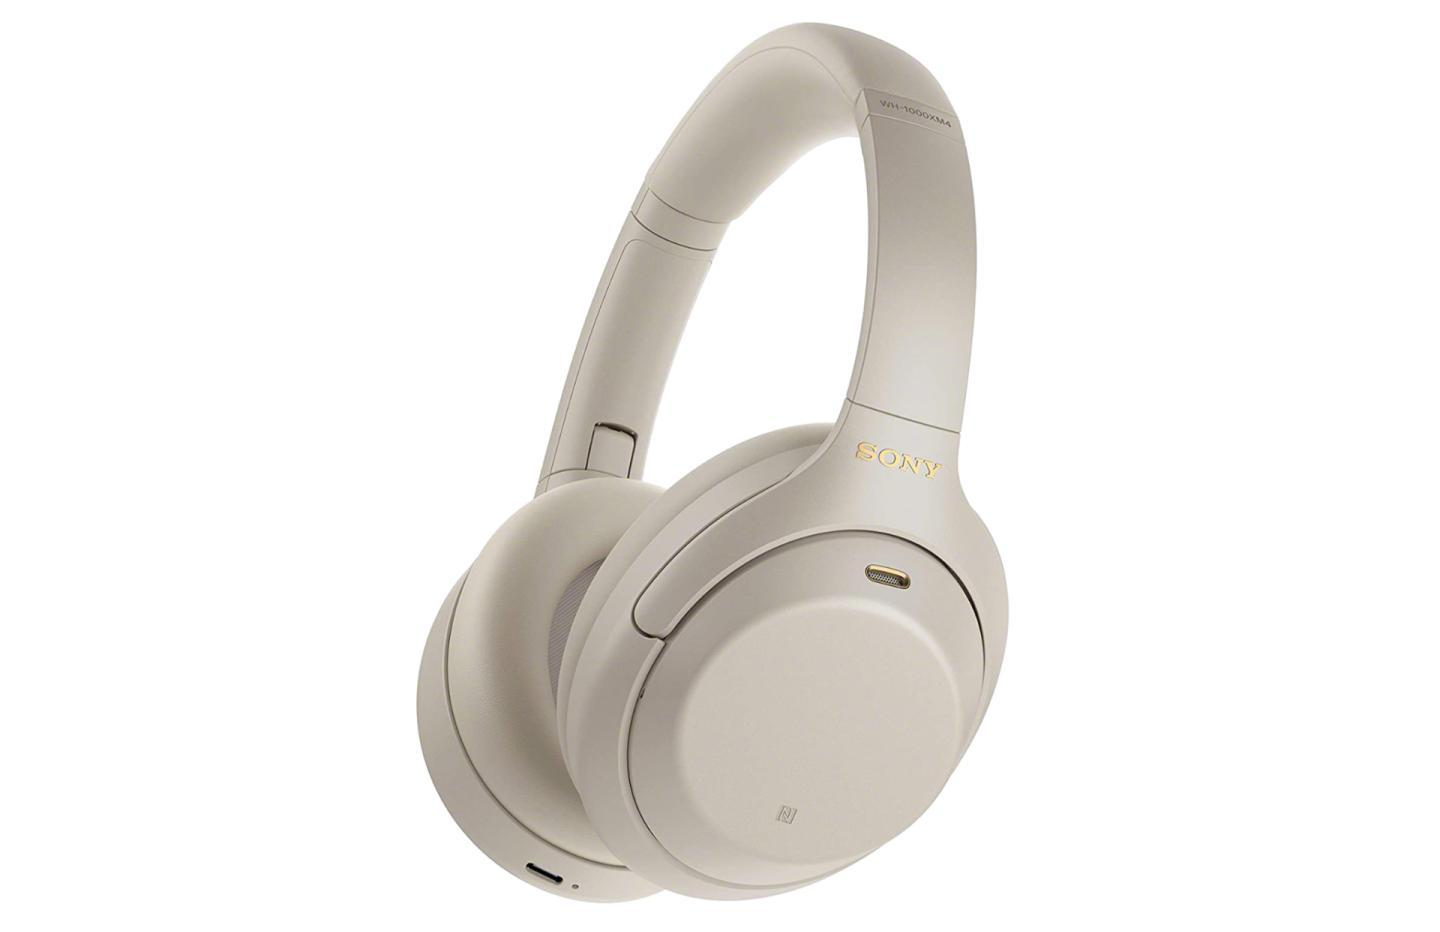 Le nouveau casque Sony WH-1000XM4 est déjà moins cher grâce à ce code promo